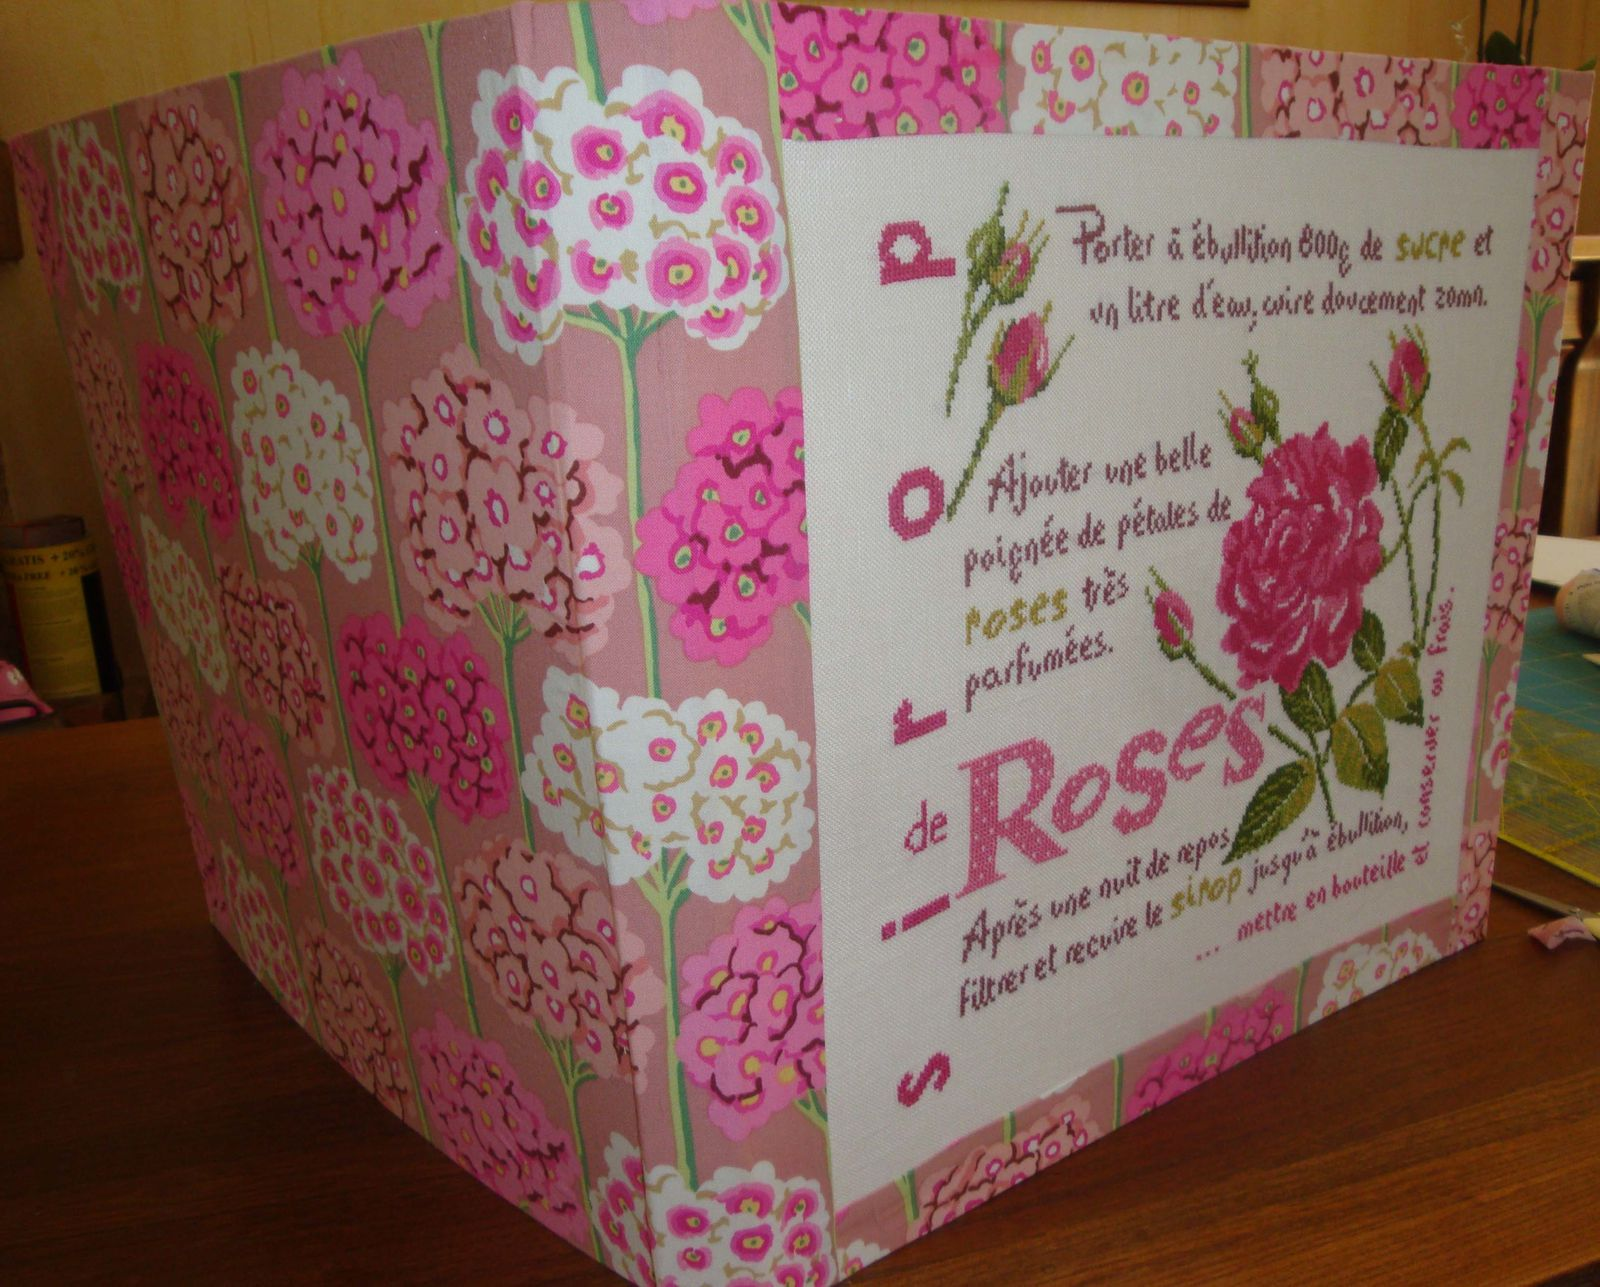 Finition cartonnage rose